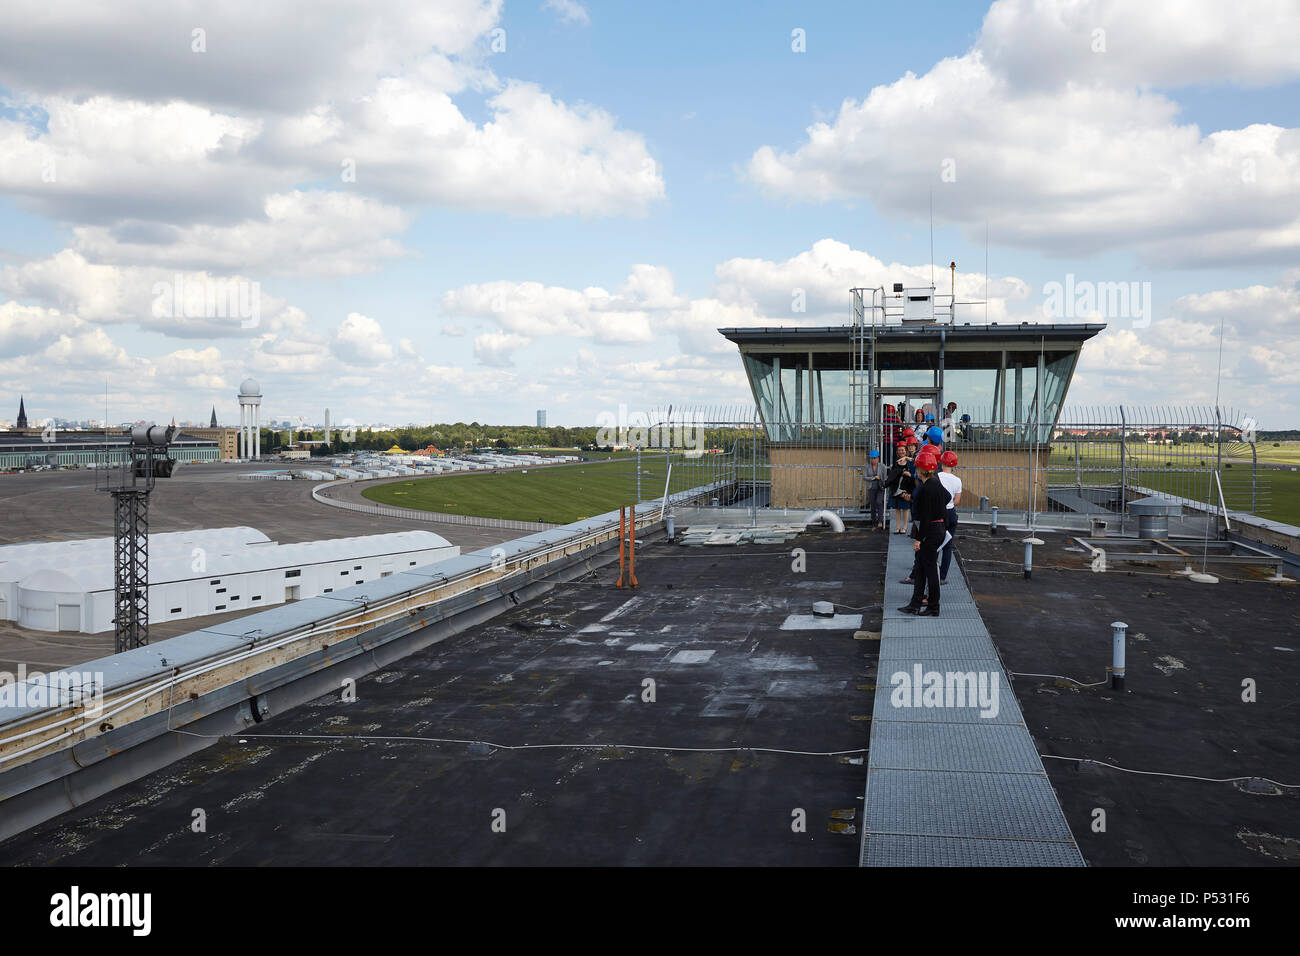 Berlin, Germany - View from the roof of the Kopfbaus West where a visitor's path is to be created. In the background the former tower of the airport Berlin Tempelhof and the Tempelhofer field. - Stock Image